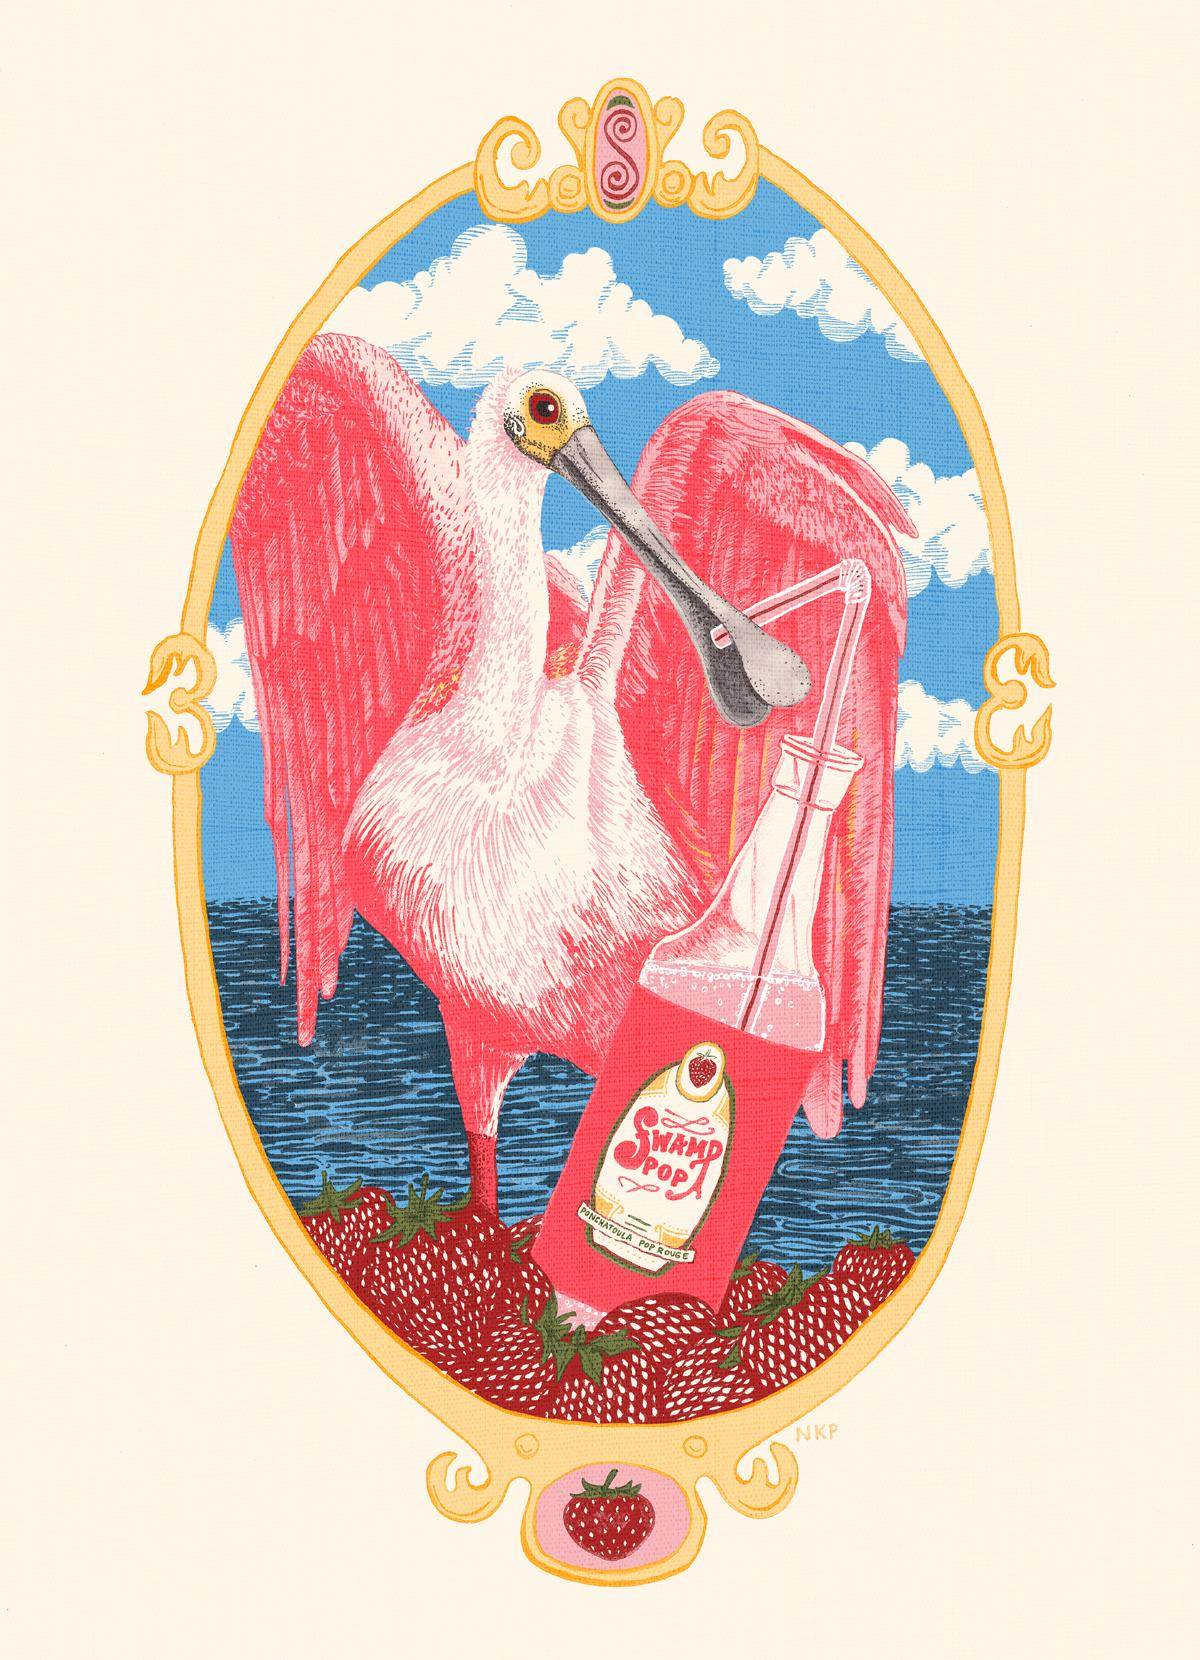 Swamp Pop Soda poster by Nora Patterson (image courtesy of the artist)